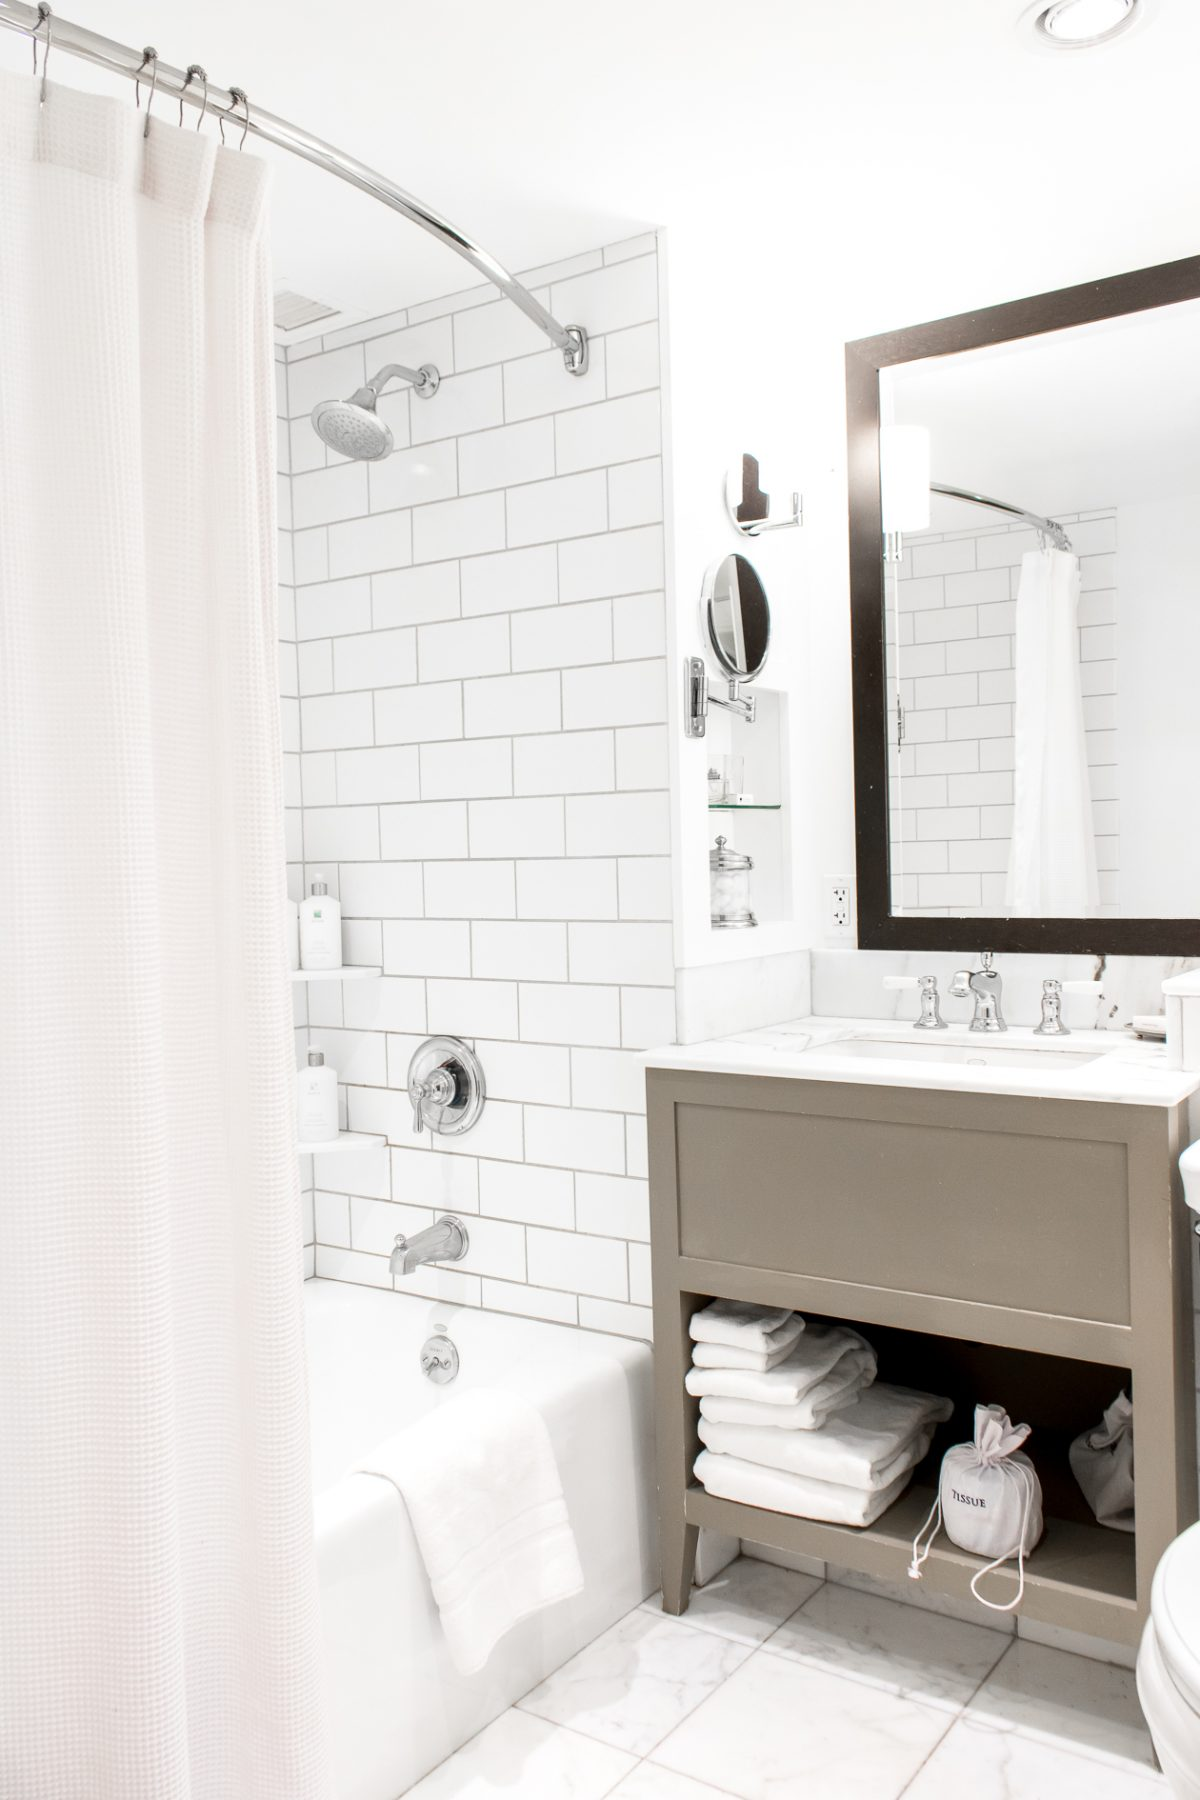 Subway Tile Bathroom and Gray Vanity at Woodstock Inn and Resort in Woodstock Vermont